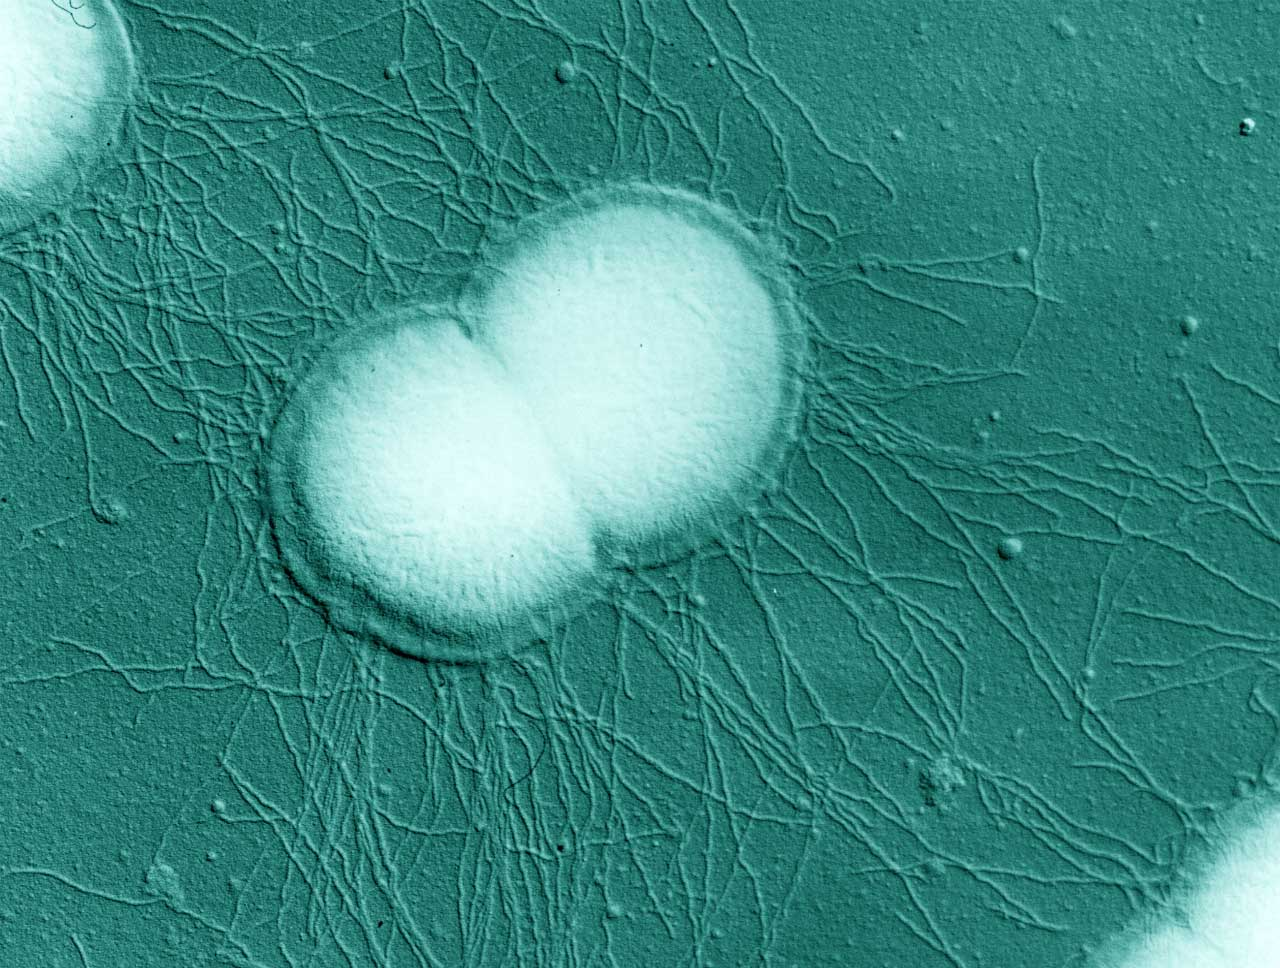 Electron micrograph of N. gonorrhoeae